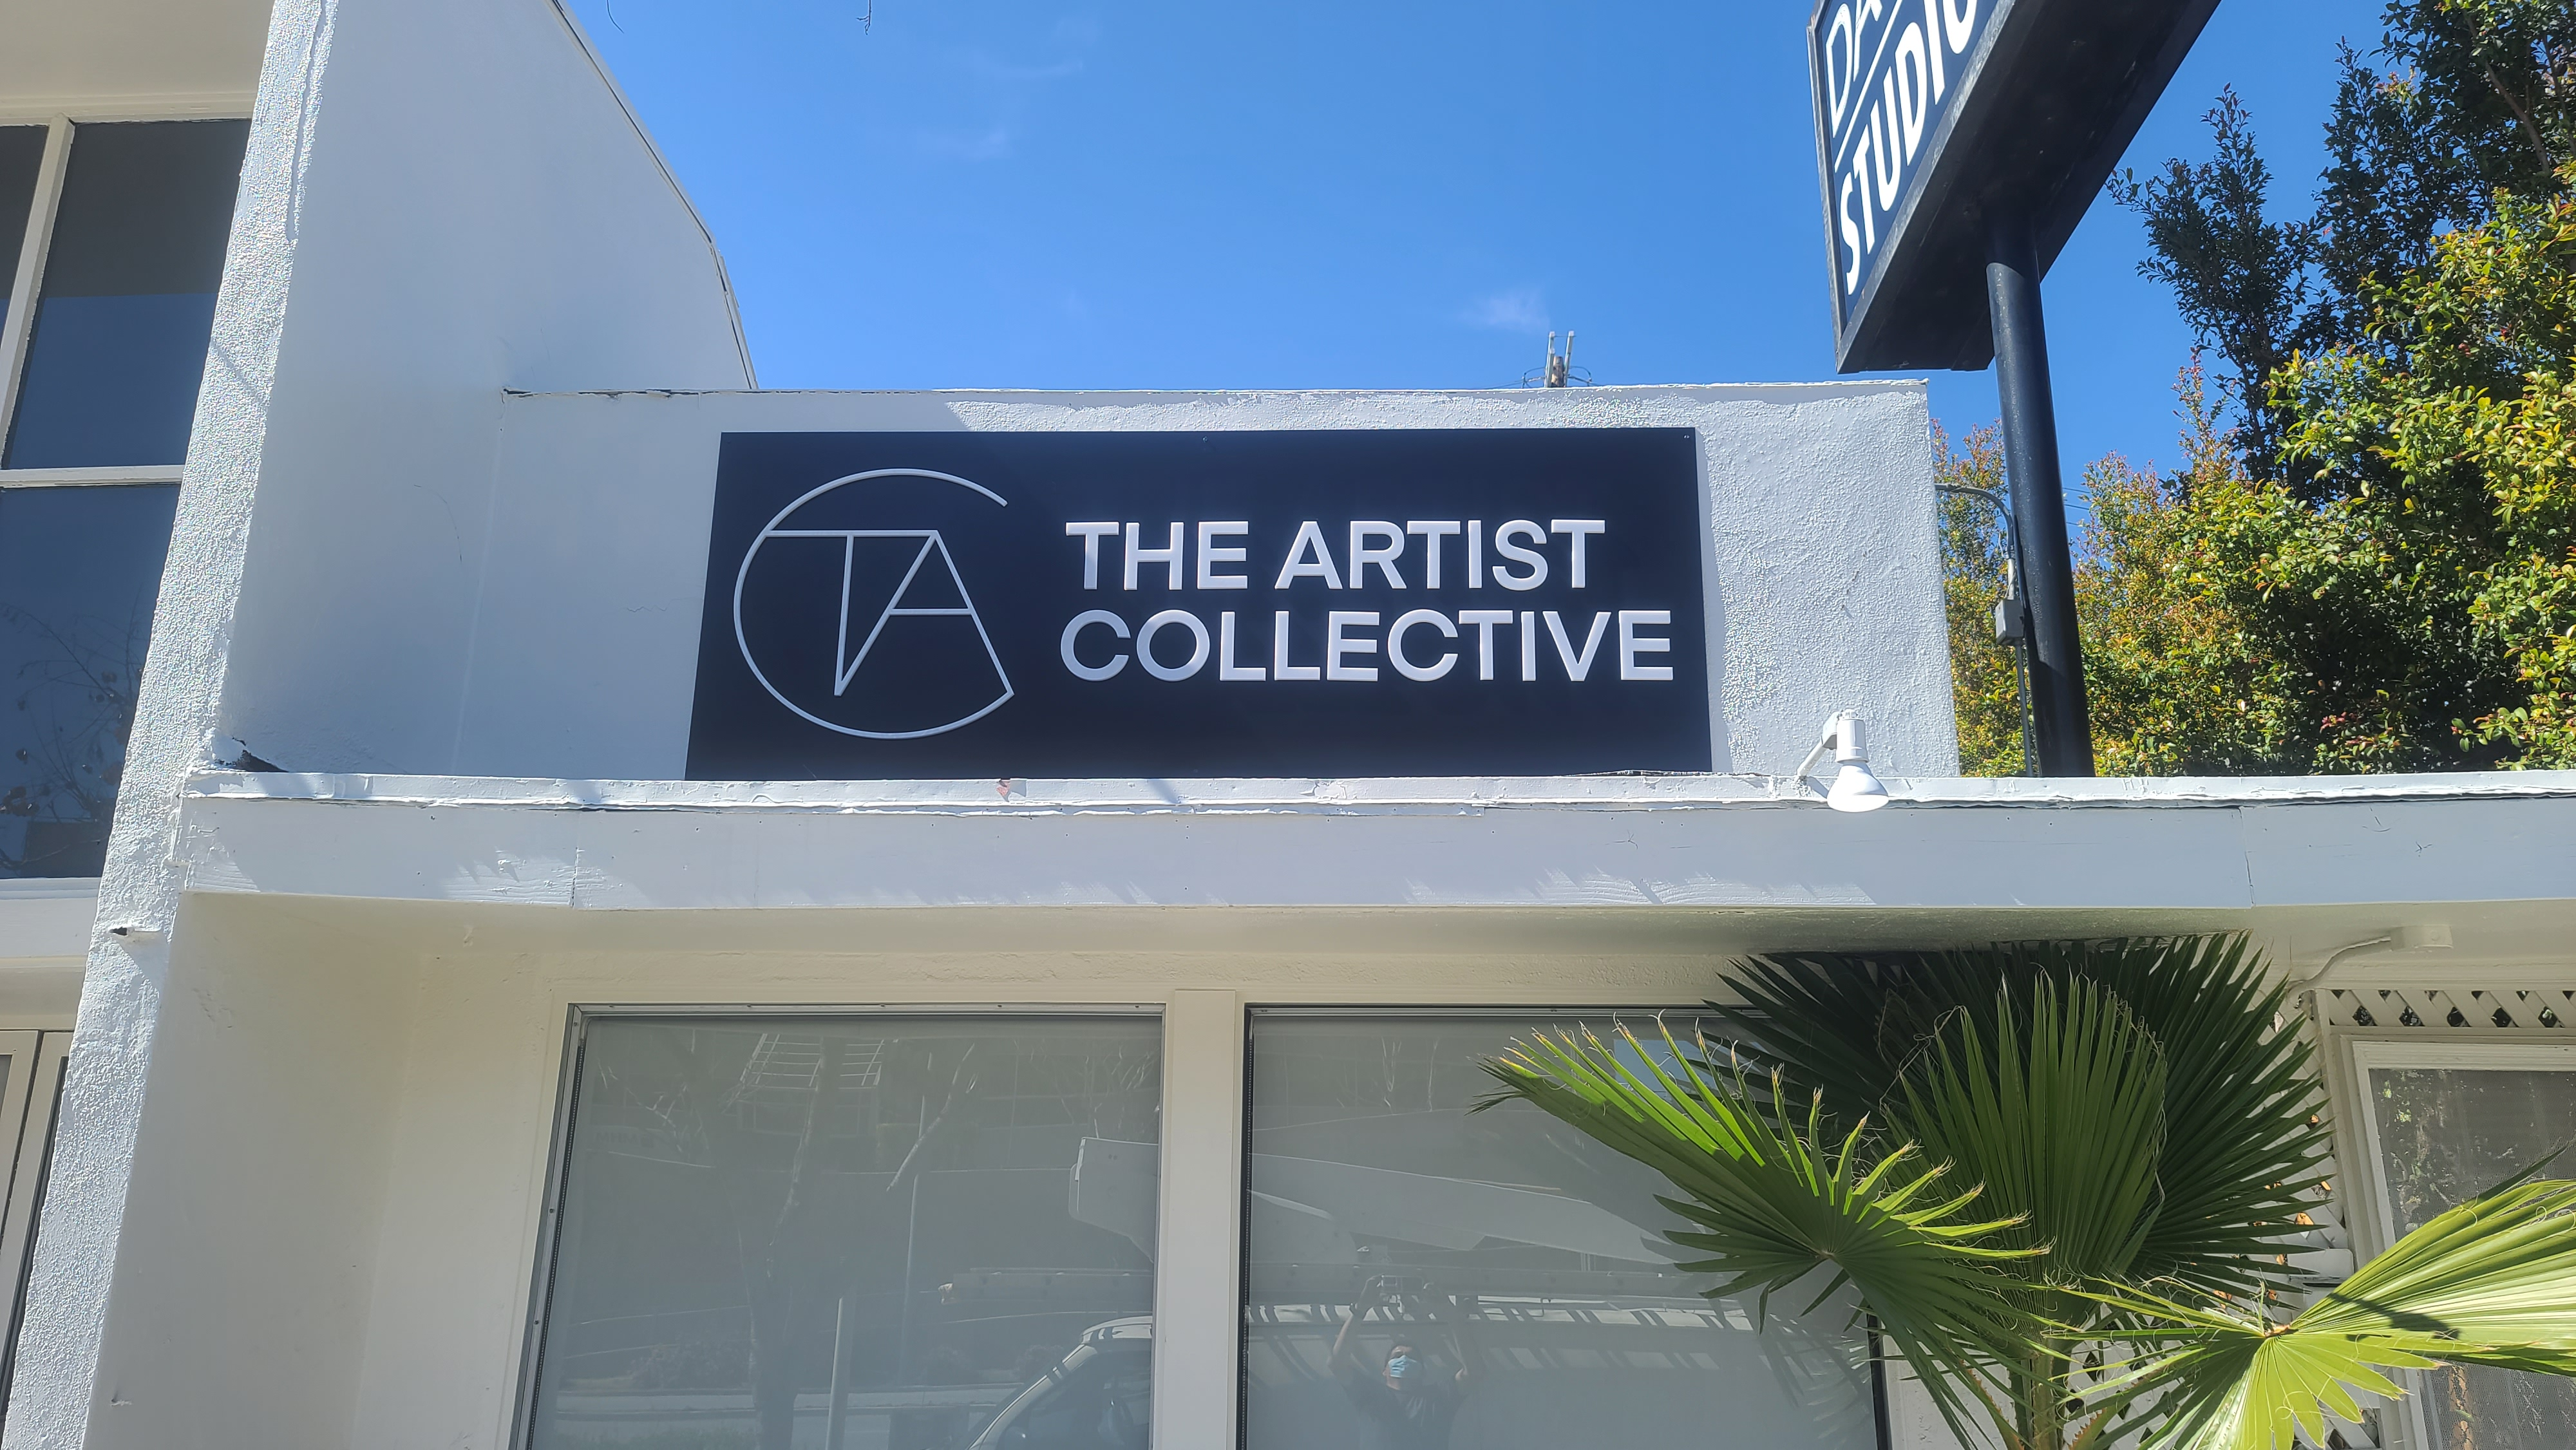 This is the custom dimensional lettering sign we fabricated and installed for The Artist Collective in Los Angeles.